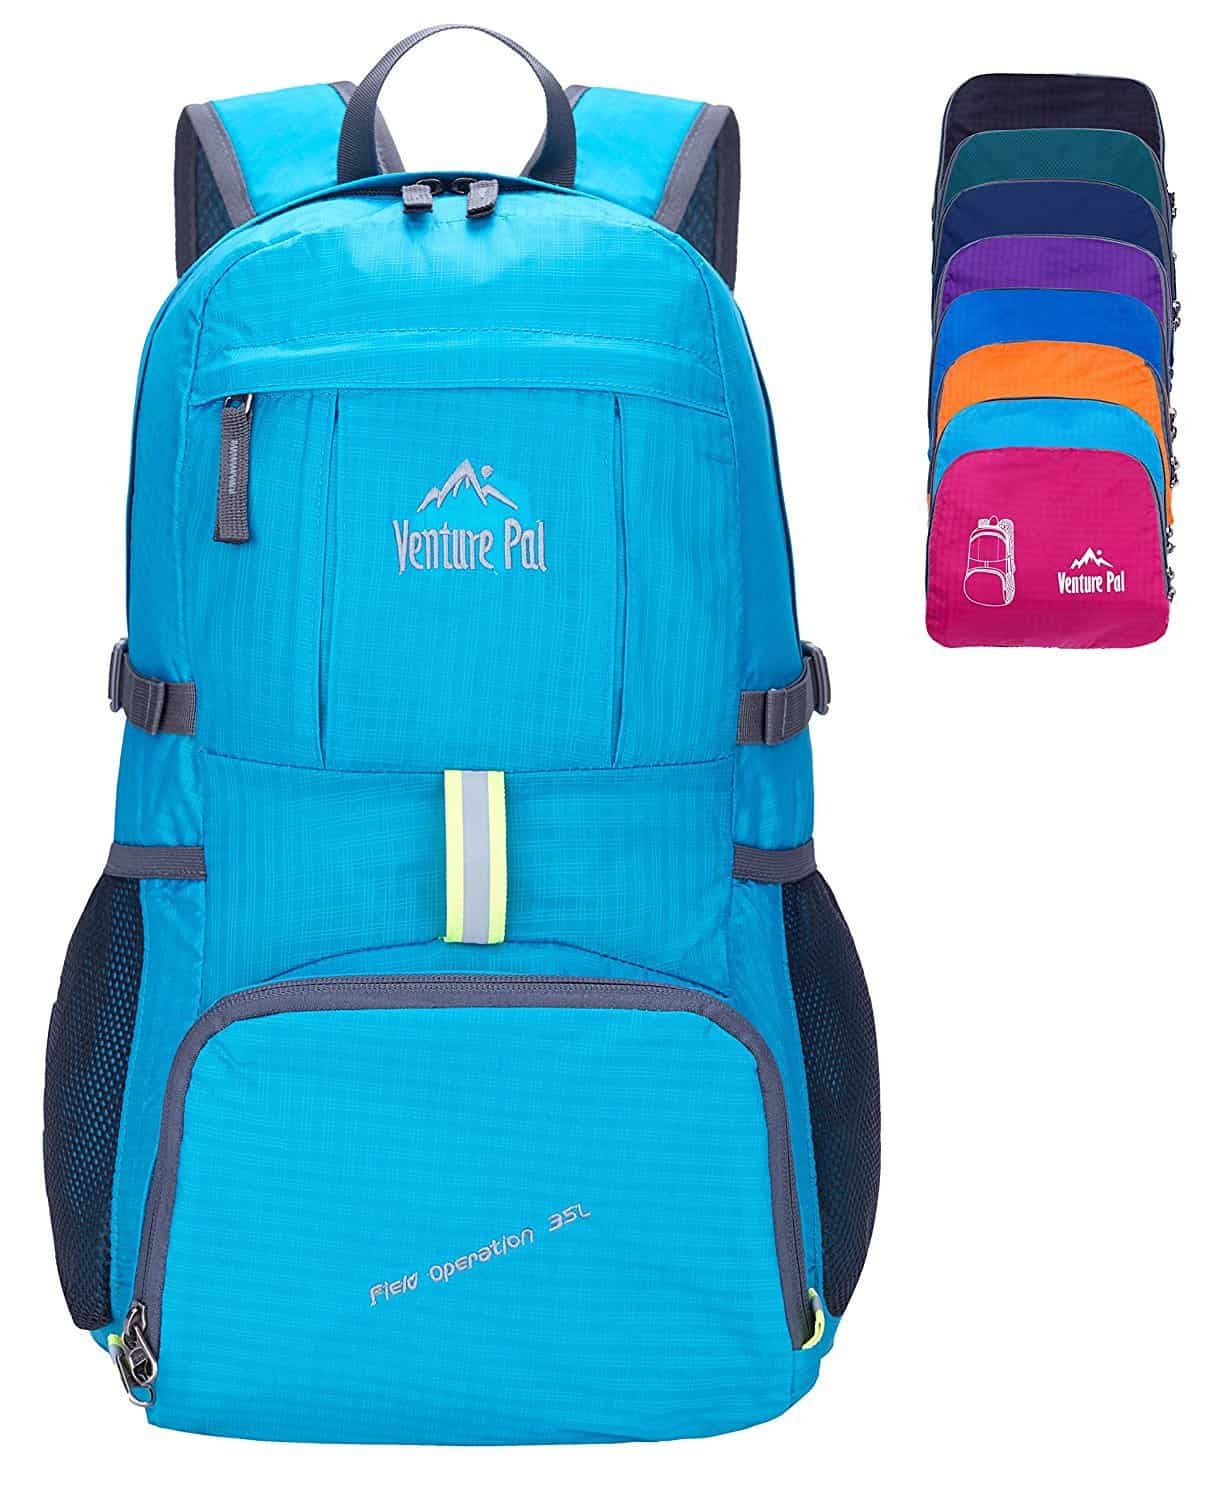 Venture Pal Multipurpose Travel Daypack Backpack Blue